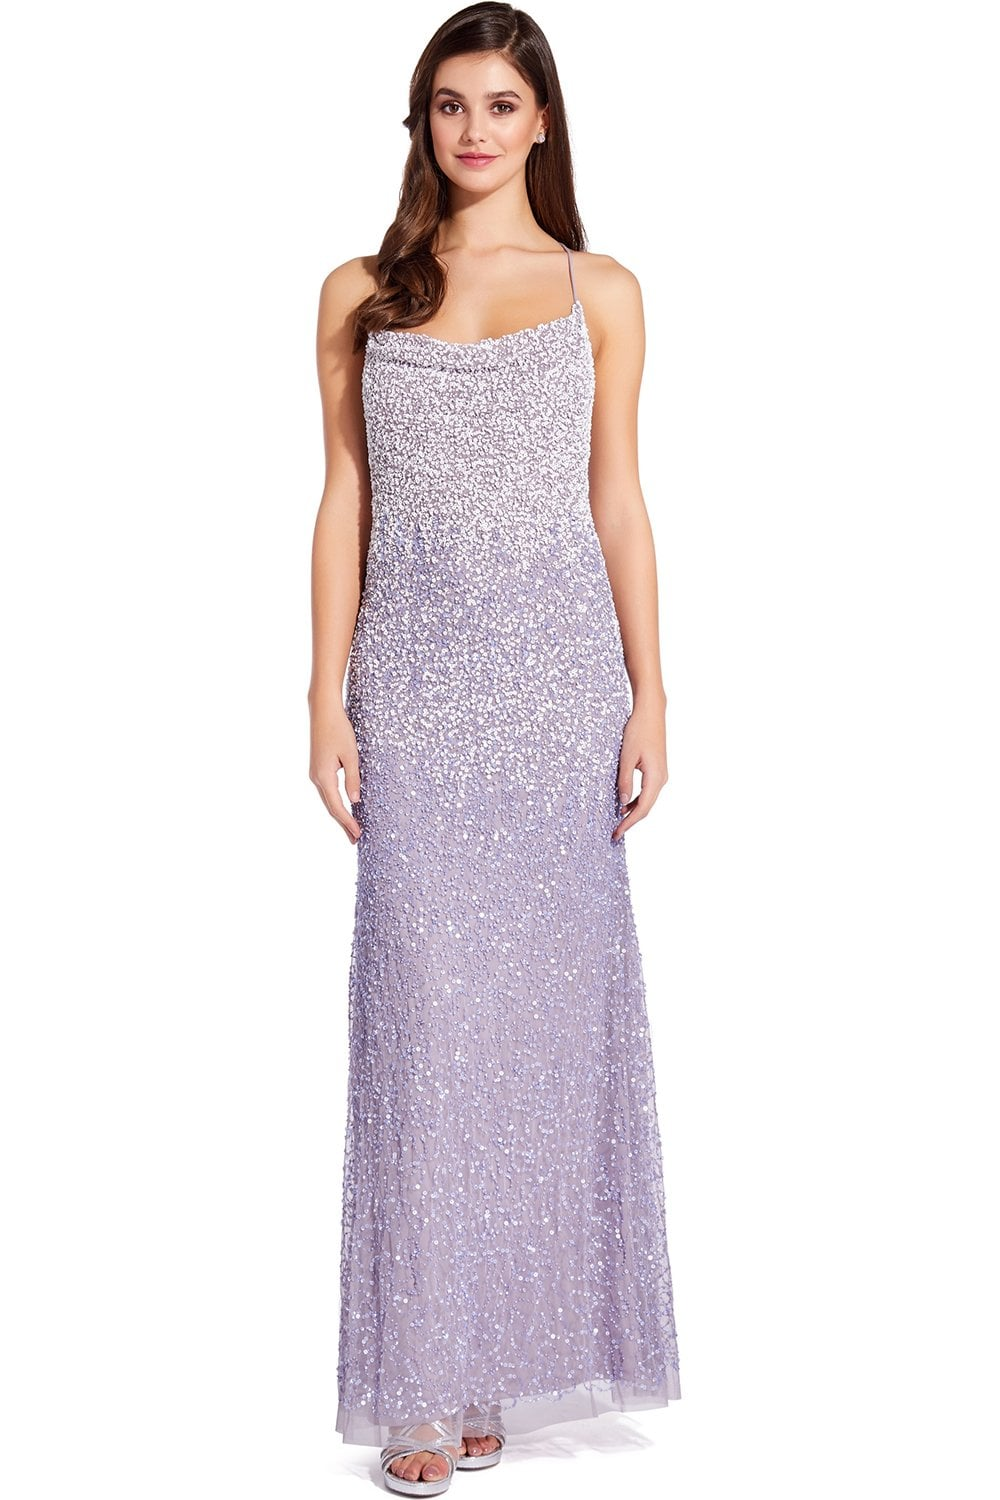 10503e1f960 Lilac Formal Dresses Uk - Data Dynamic AG